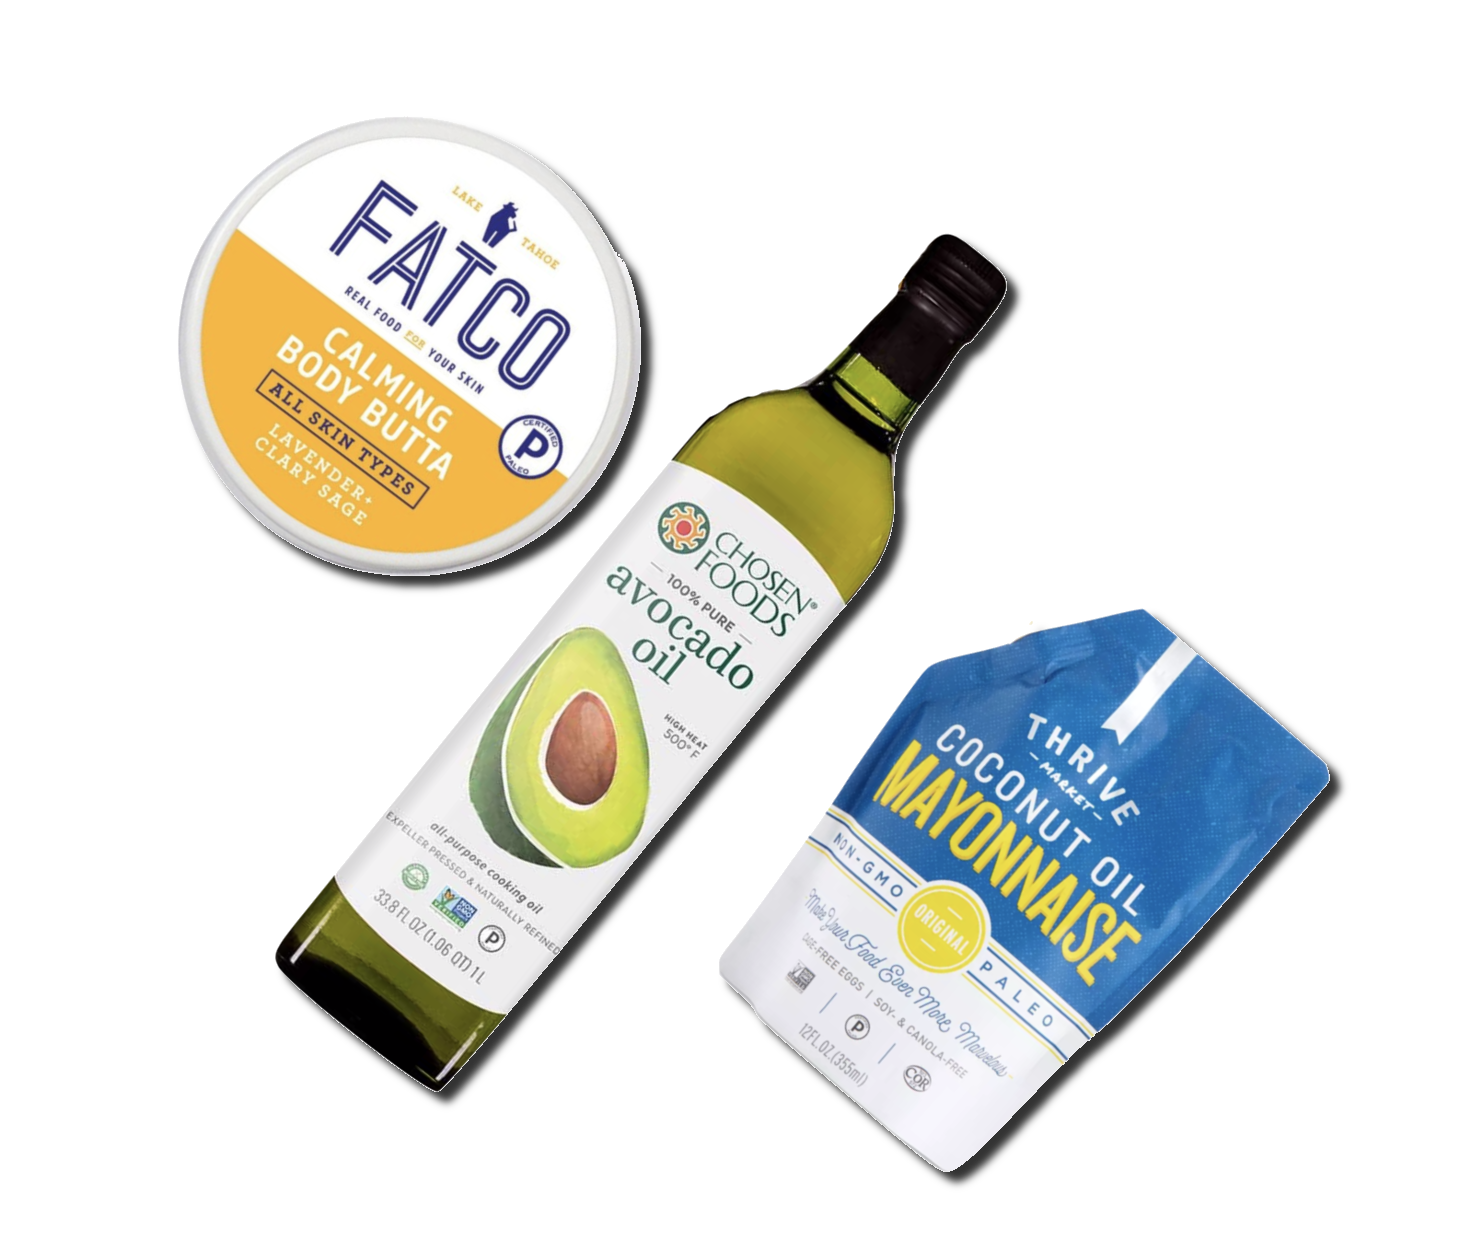 Paleo and Keto Certified products